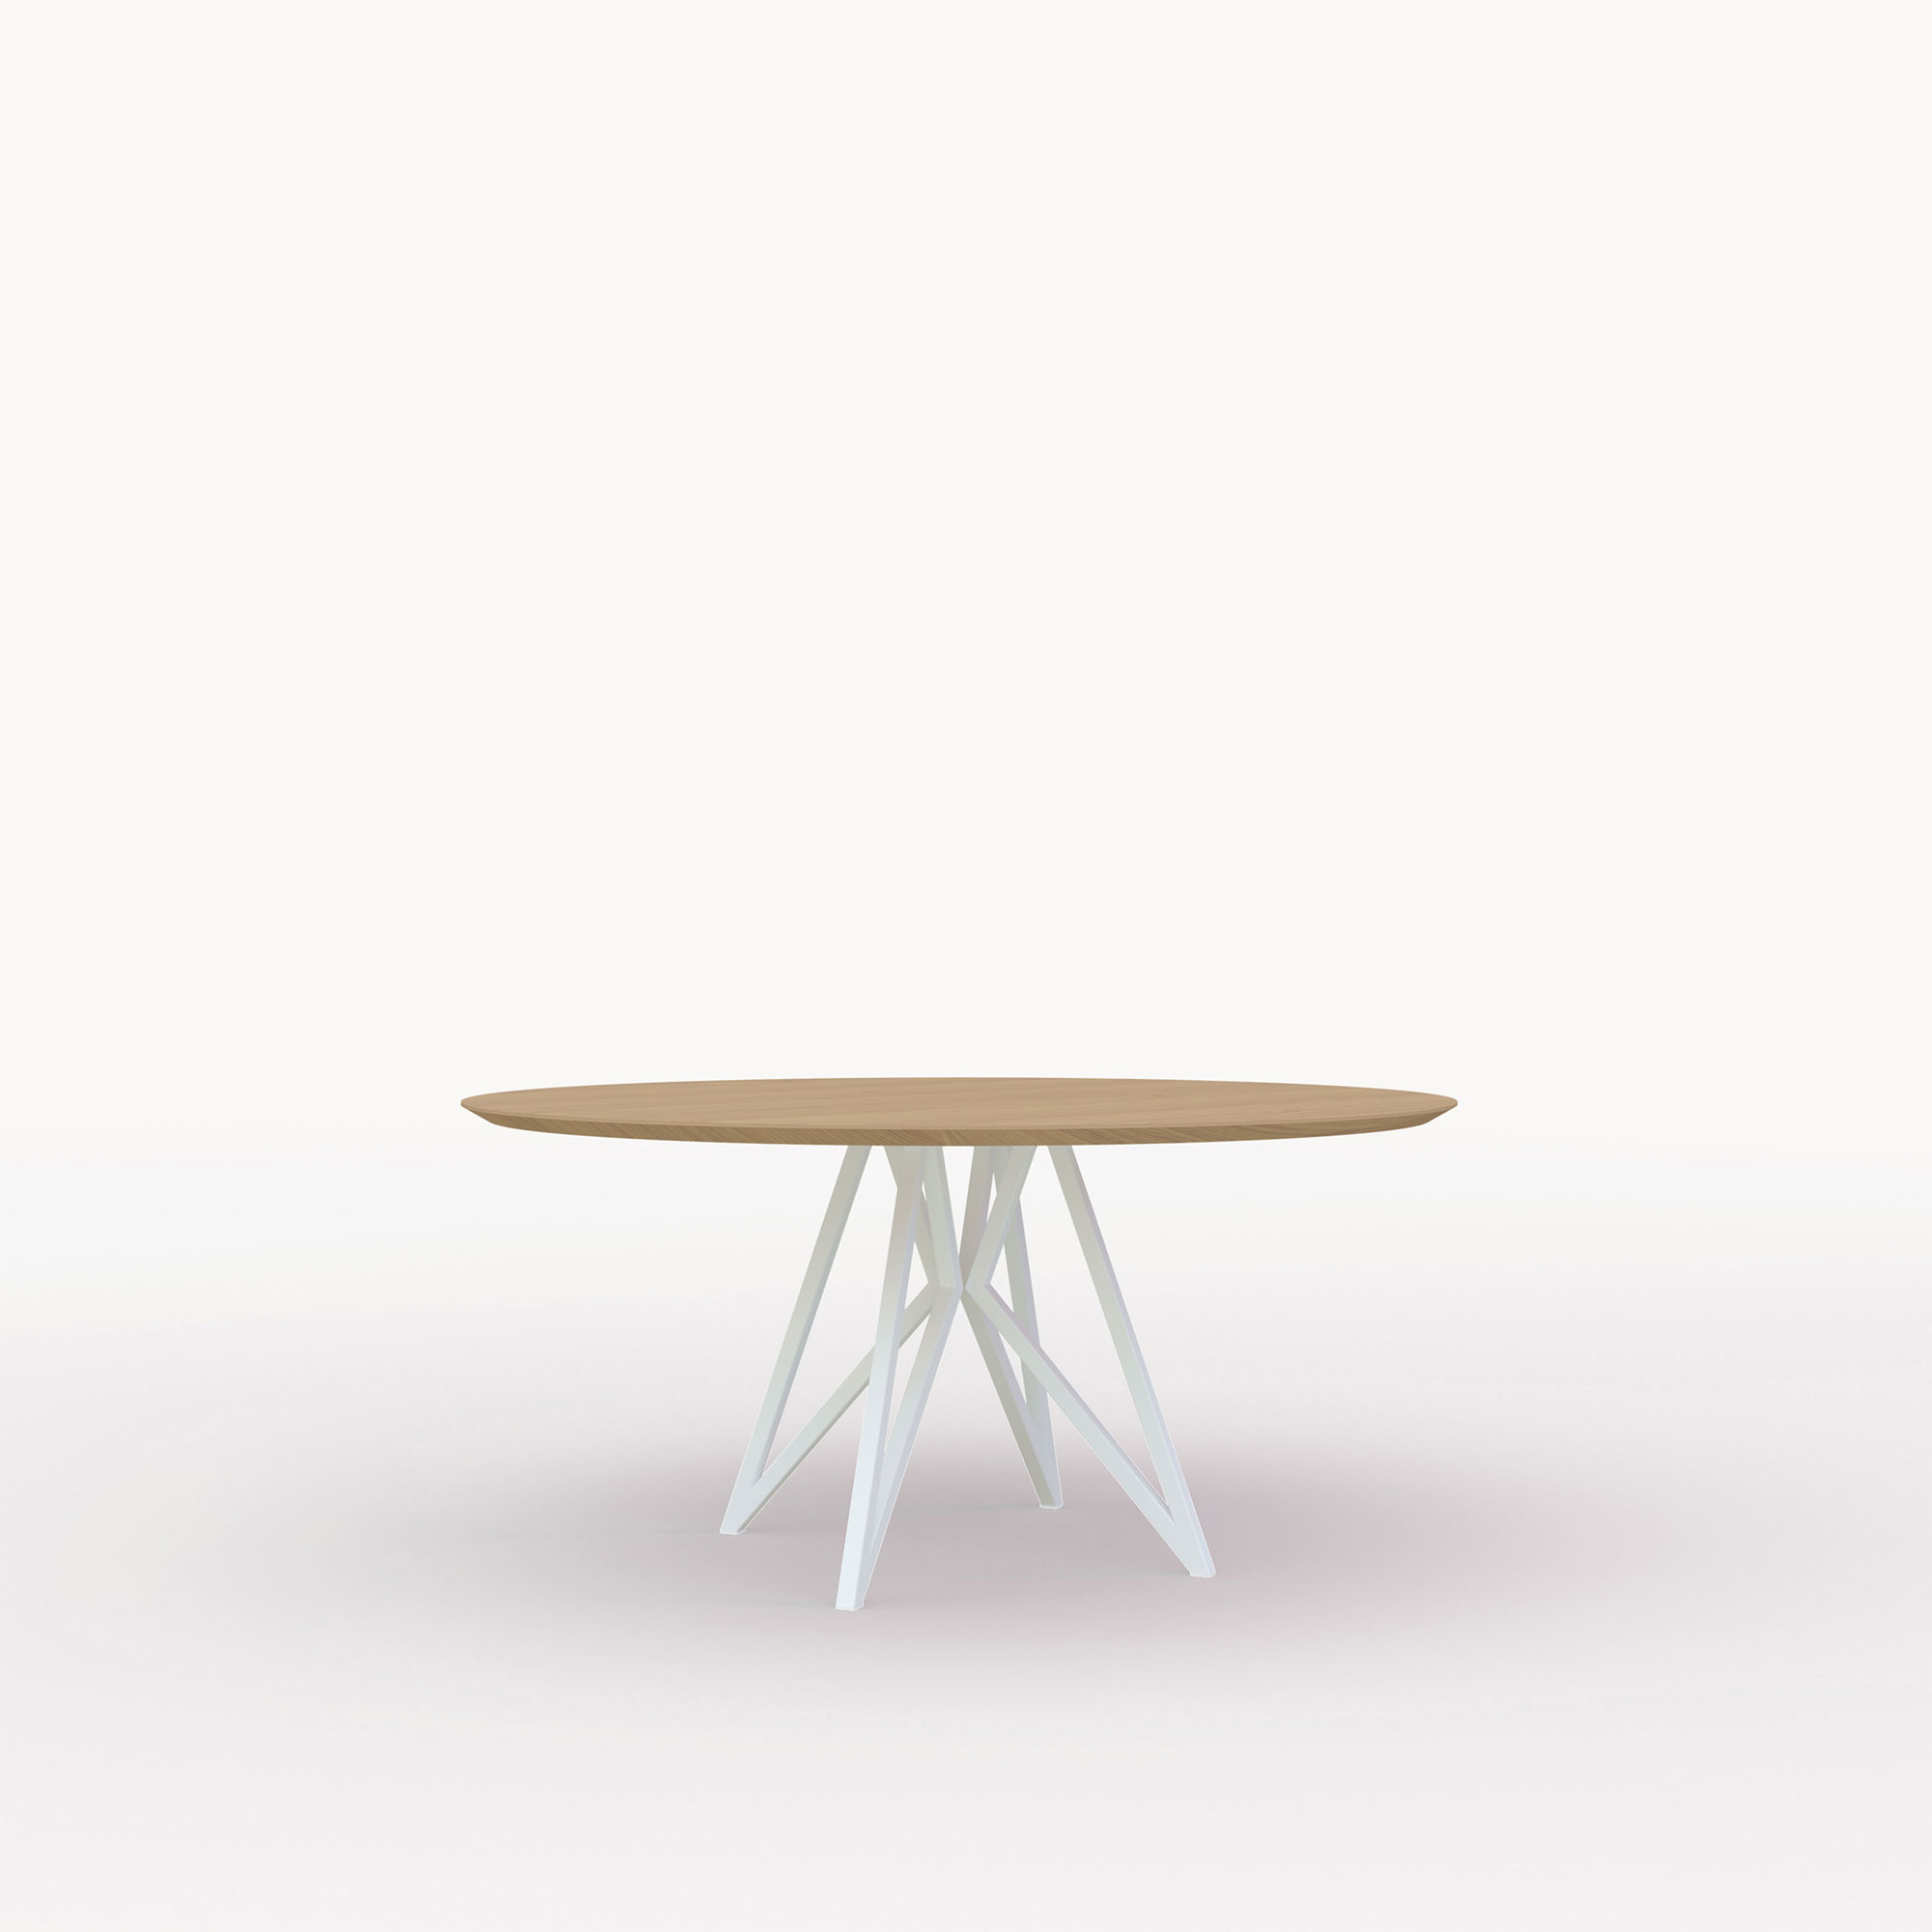 Ronde design tafel op maat | Butterfly Quadpod Steel white powdercoating | Oak hardwax oil natural light 3041 | Studio HENK | Cutout